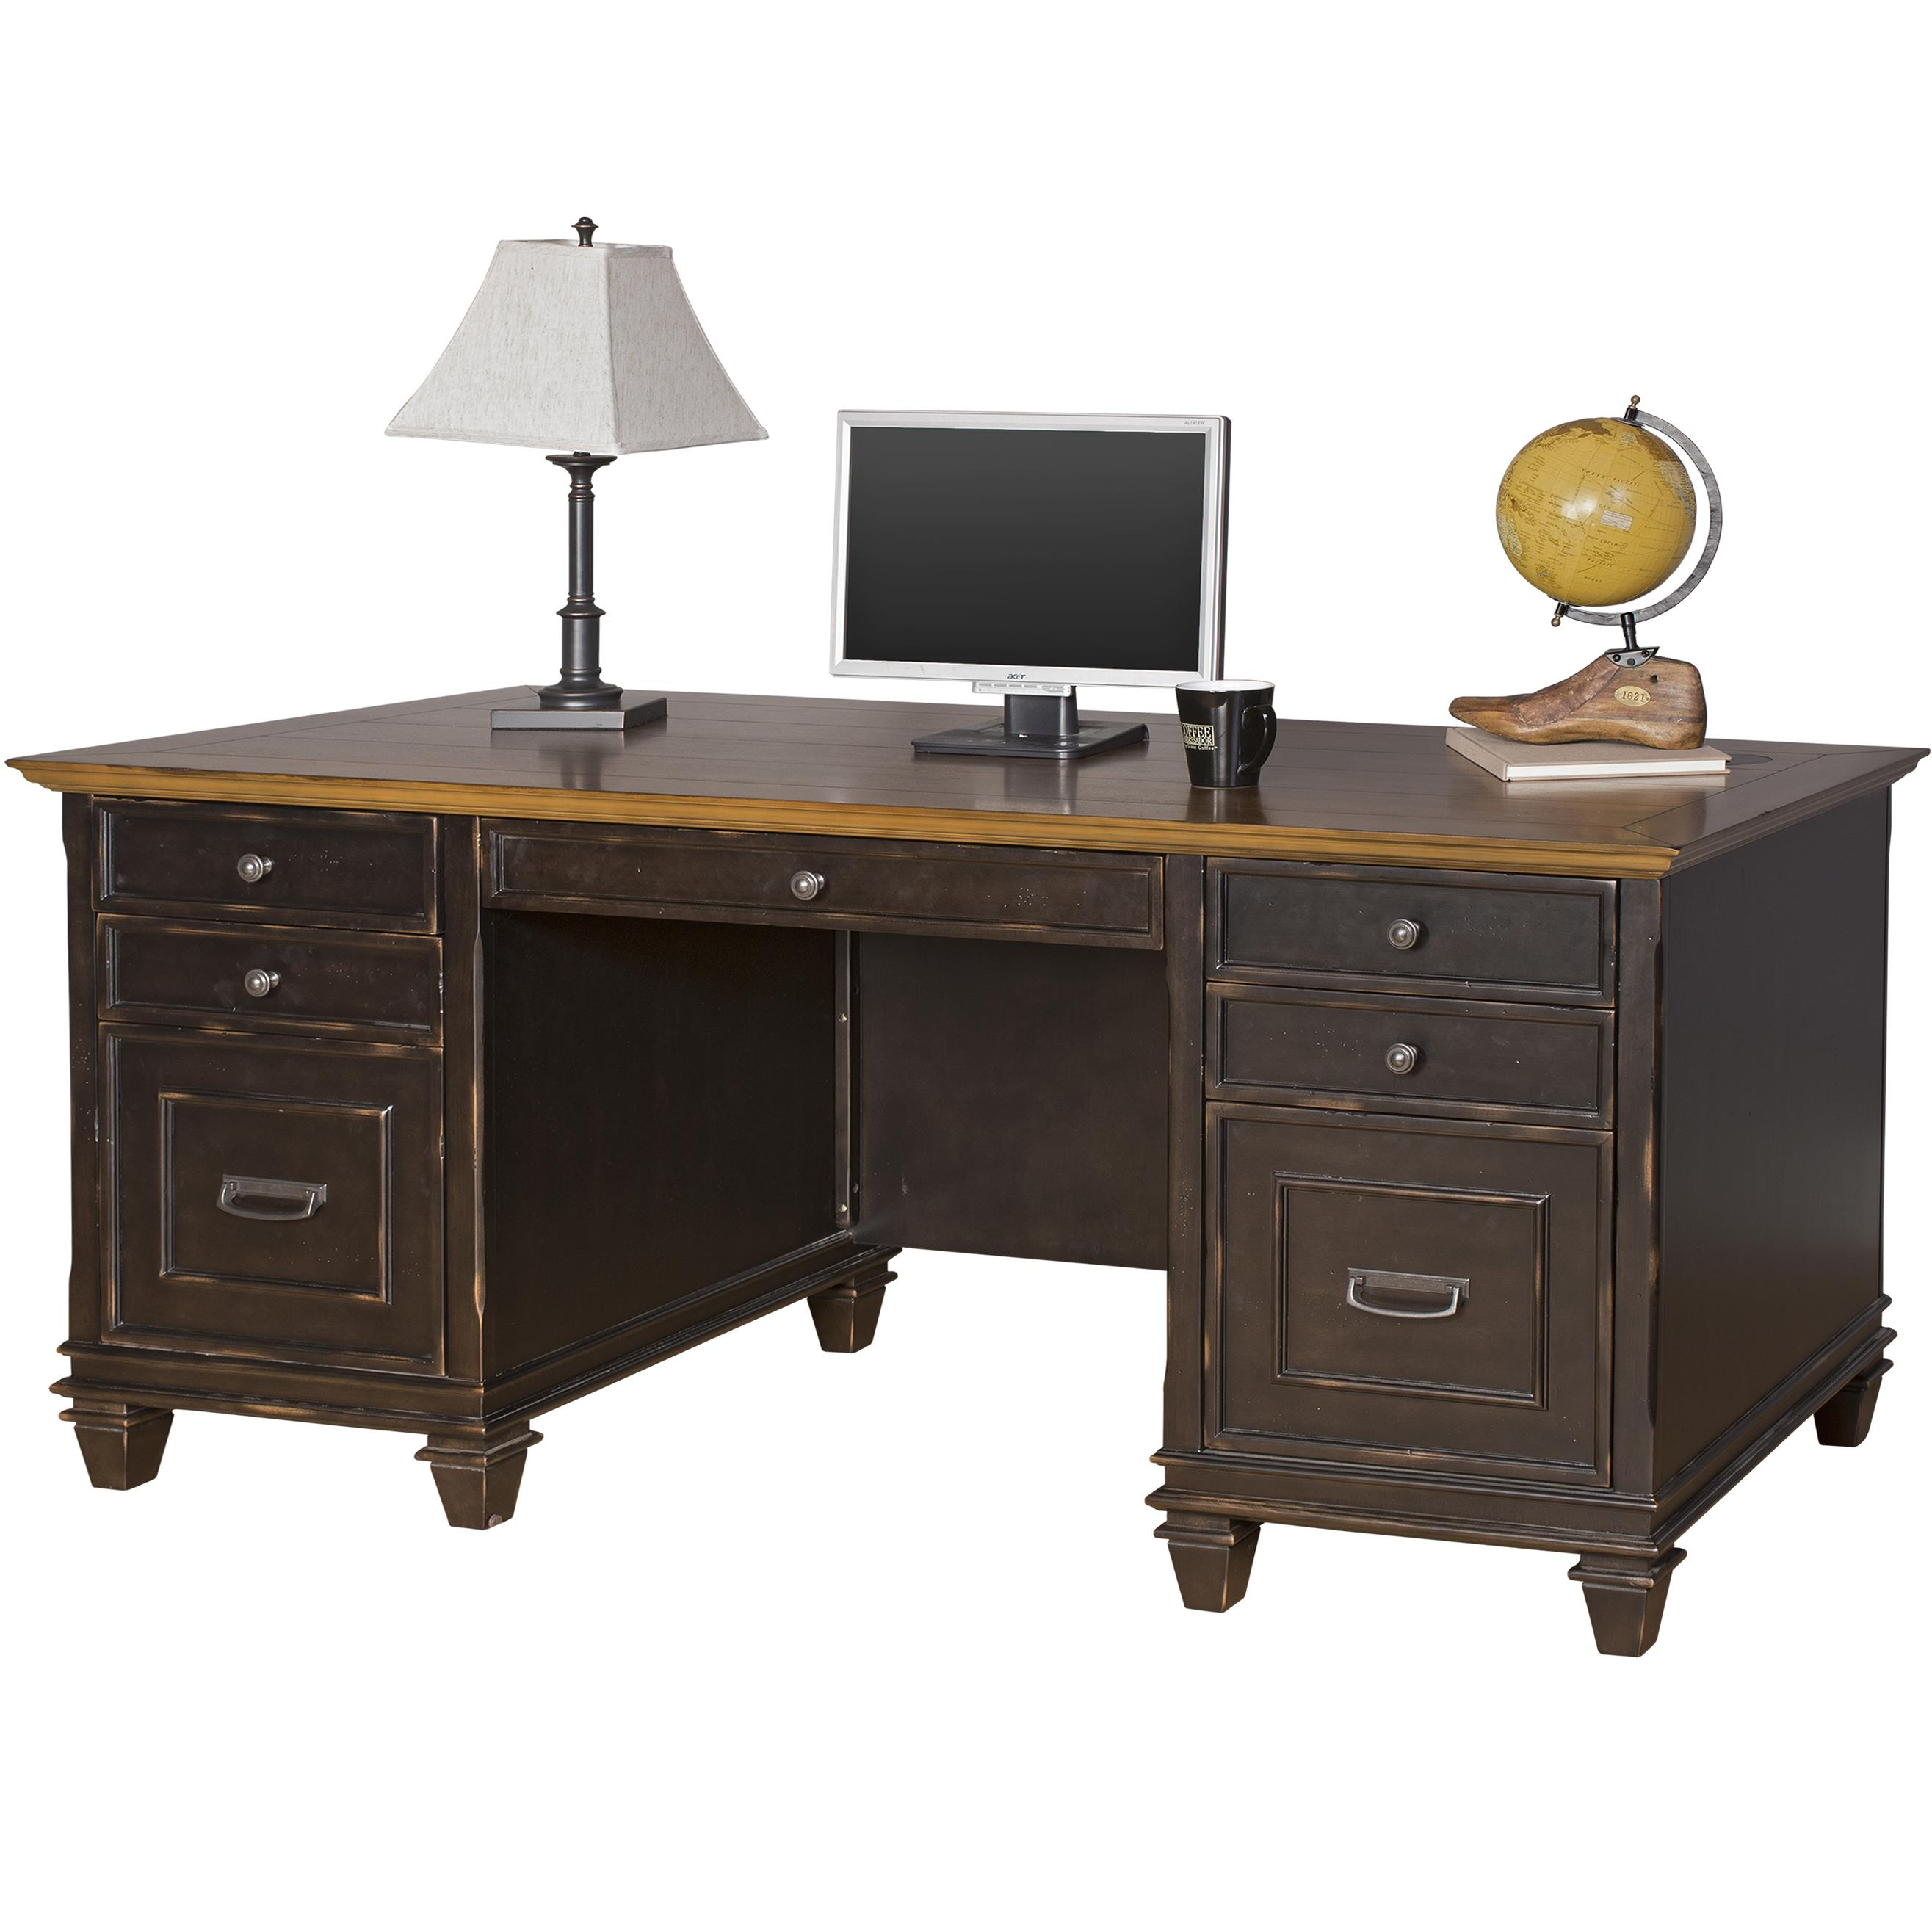 kathy ireland Home by Martin Hartford Double Pedestal Desk - Item Number: IMHF680